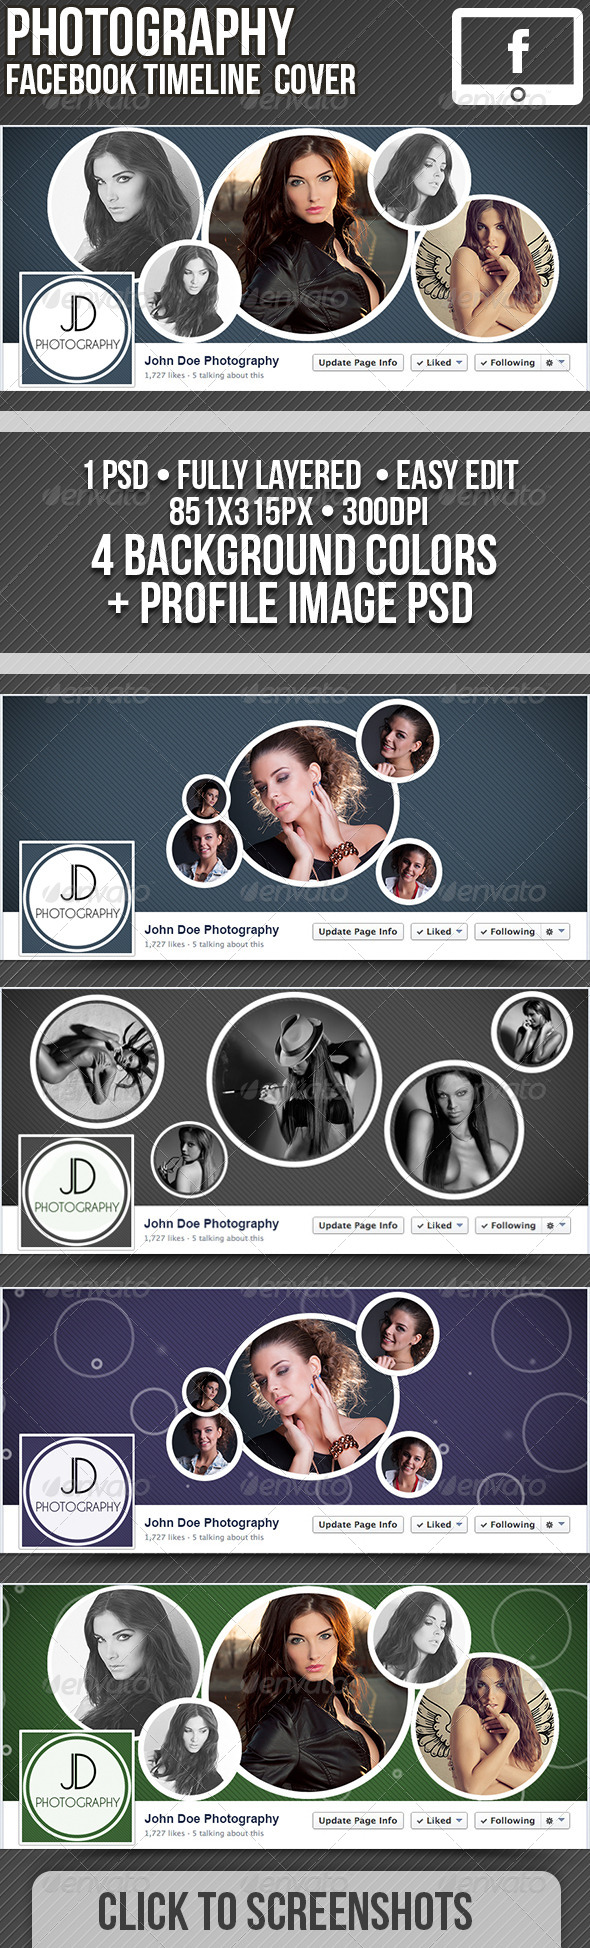 Facebook Timeline Plus Profile Image PSD - Facebook Timeline Covers Social Media